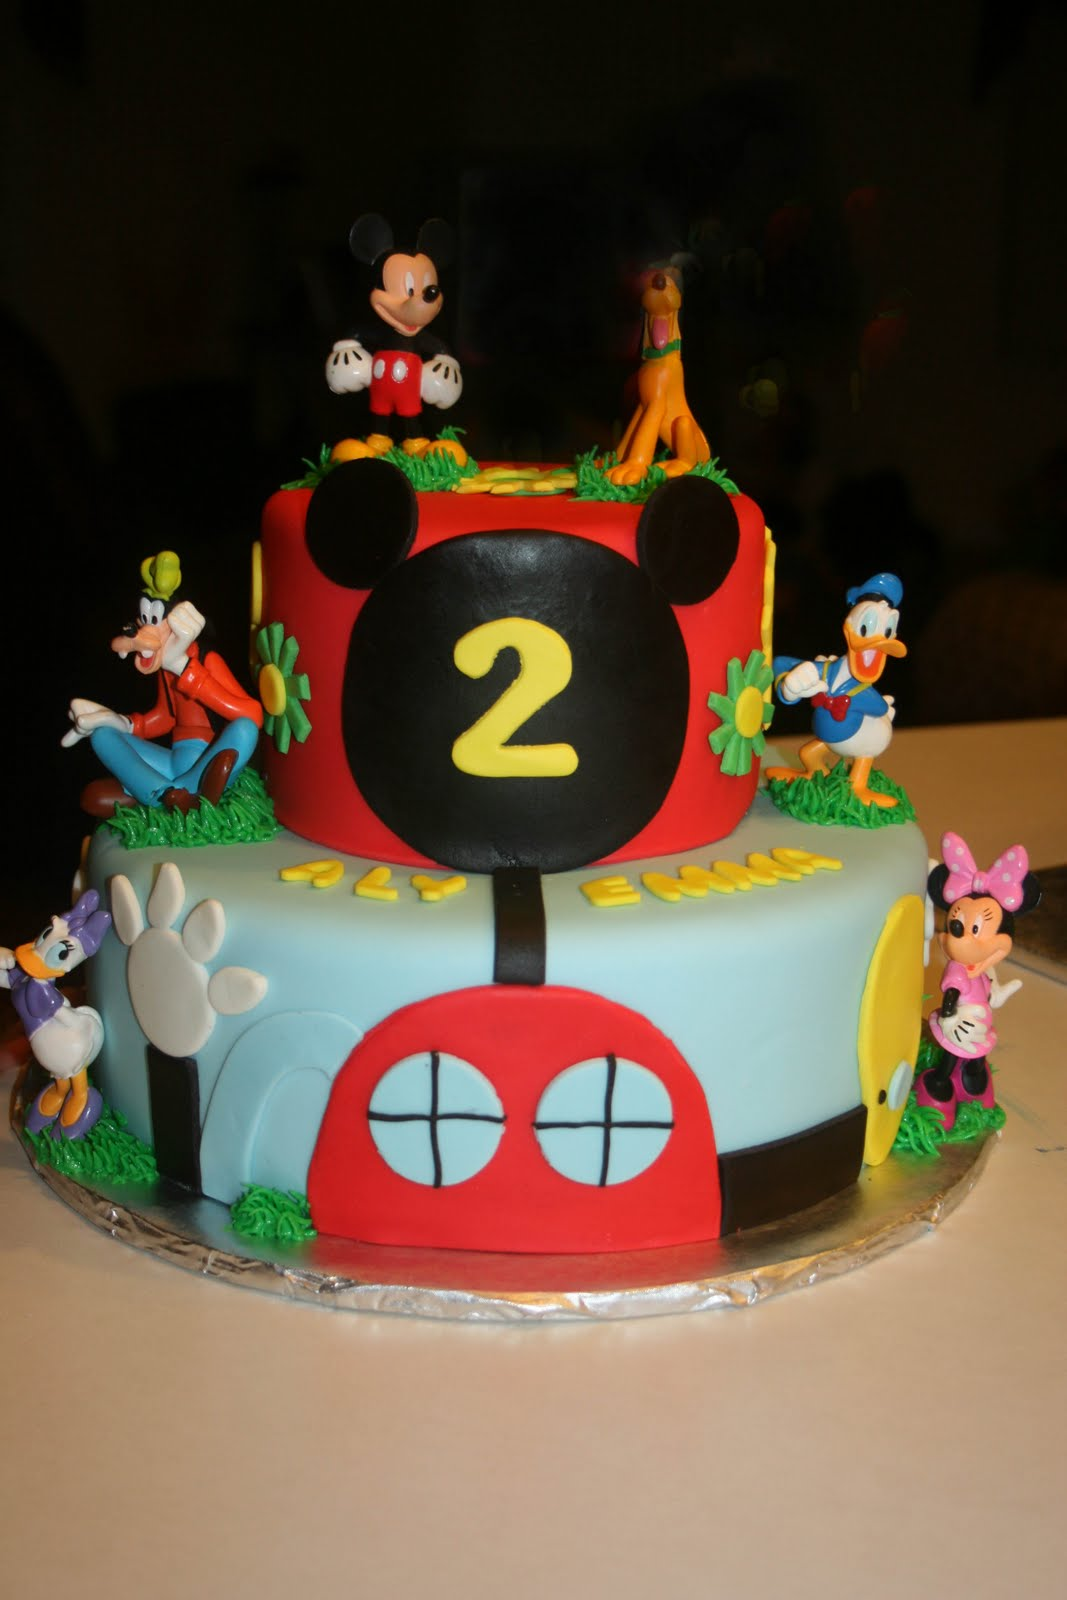 Mickey Mouse Clubhouse Cake Images : Carly s Cakes: Mickey Mouse Clubhouse